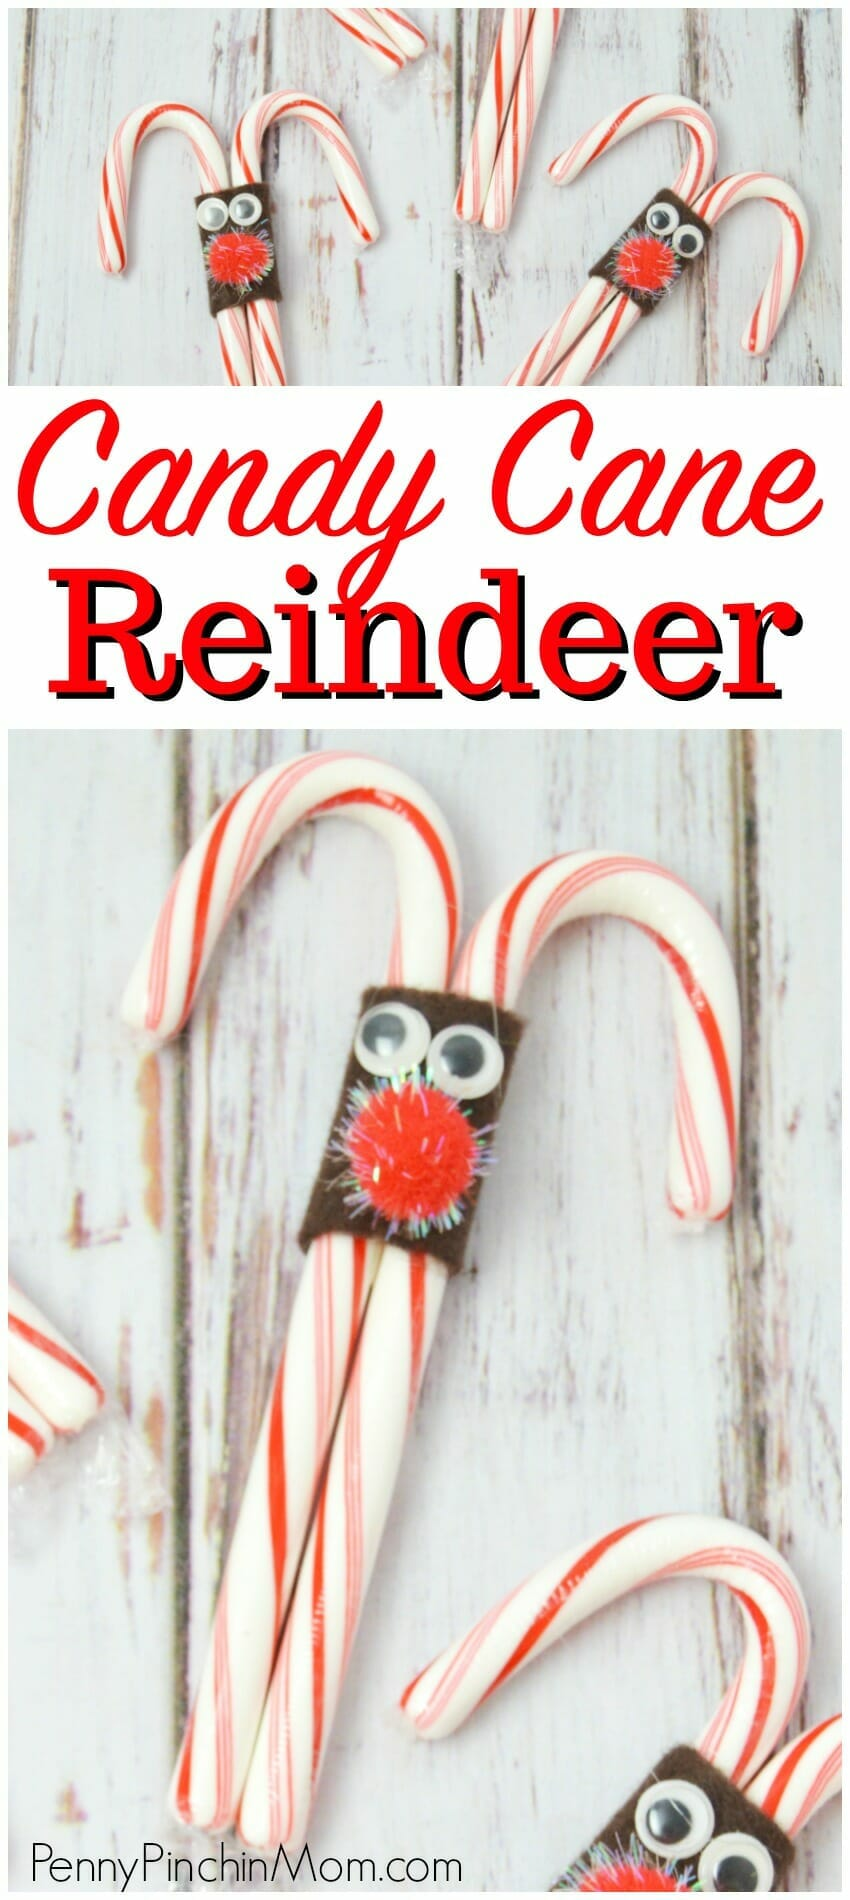 Easy DIY Christmas Party Treat Idea - Reindeer Candy Canes  Christmas decorations | Christmas crafts | school party craft idea | holidays  #Christmas #crafts #kids